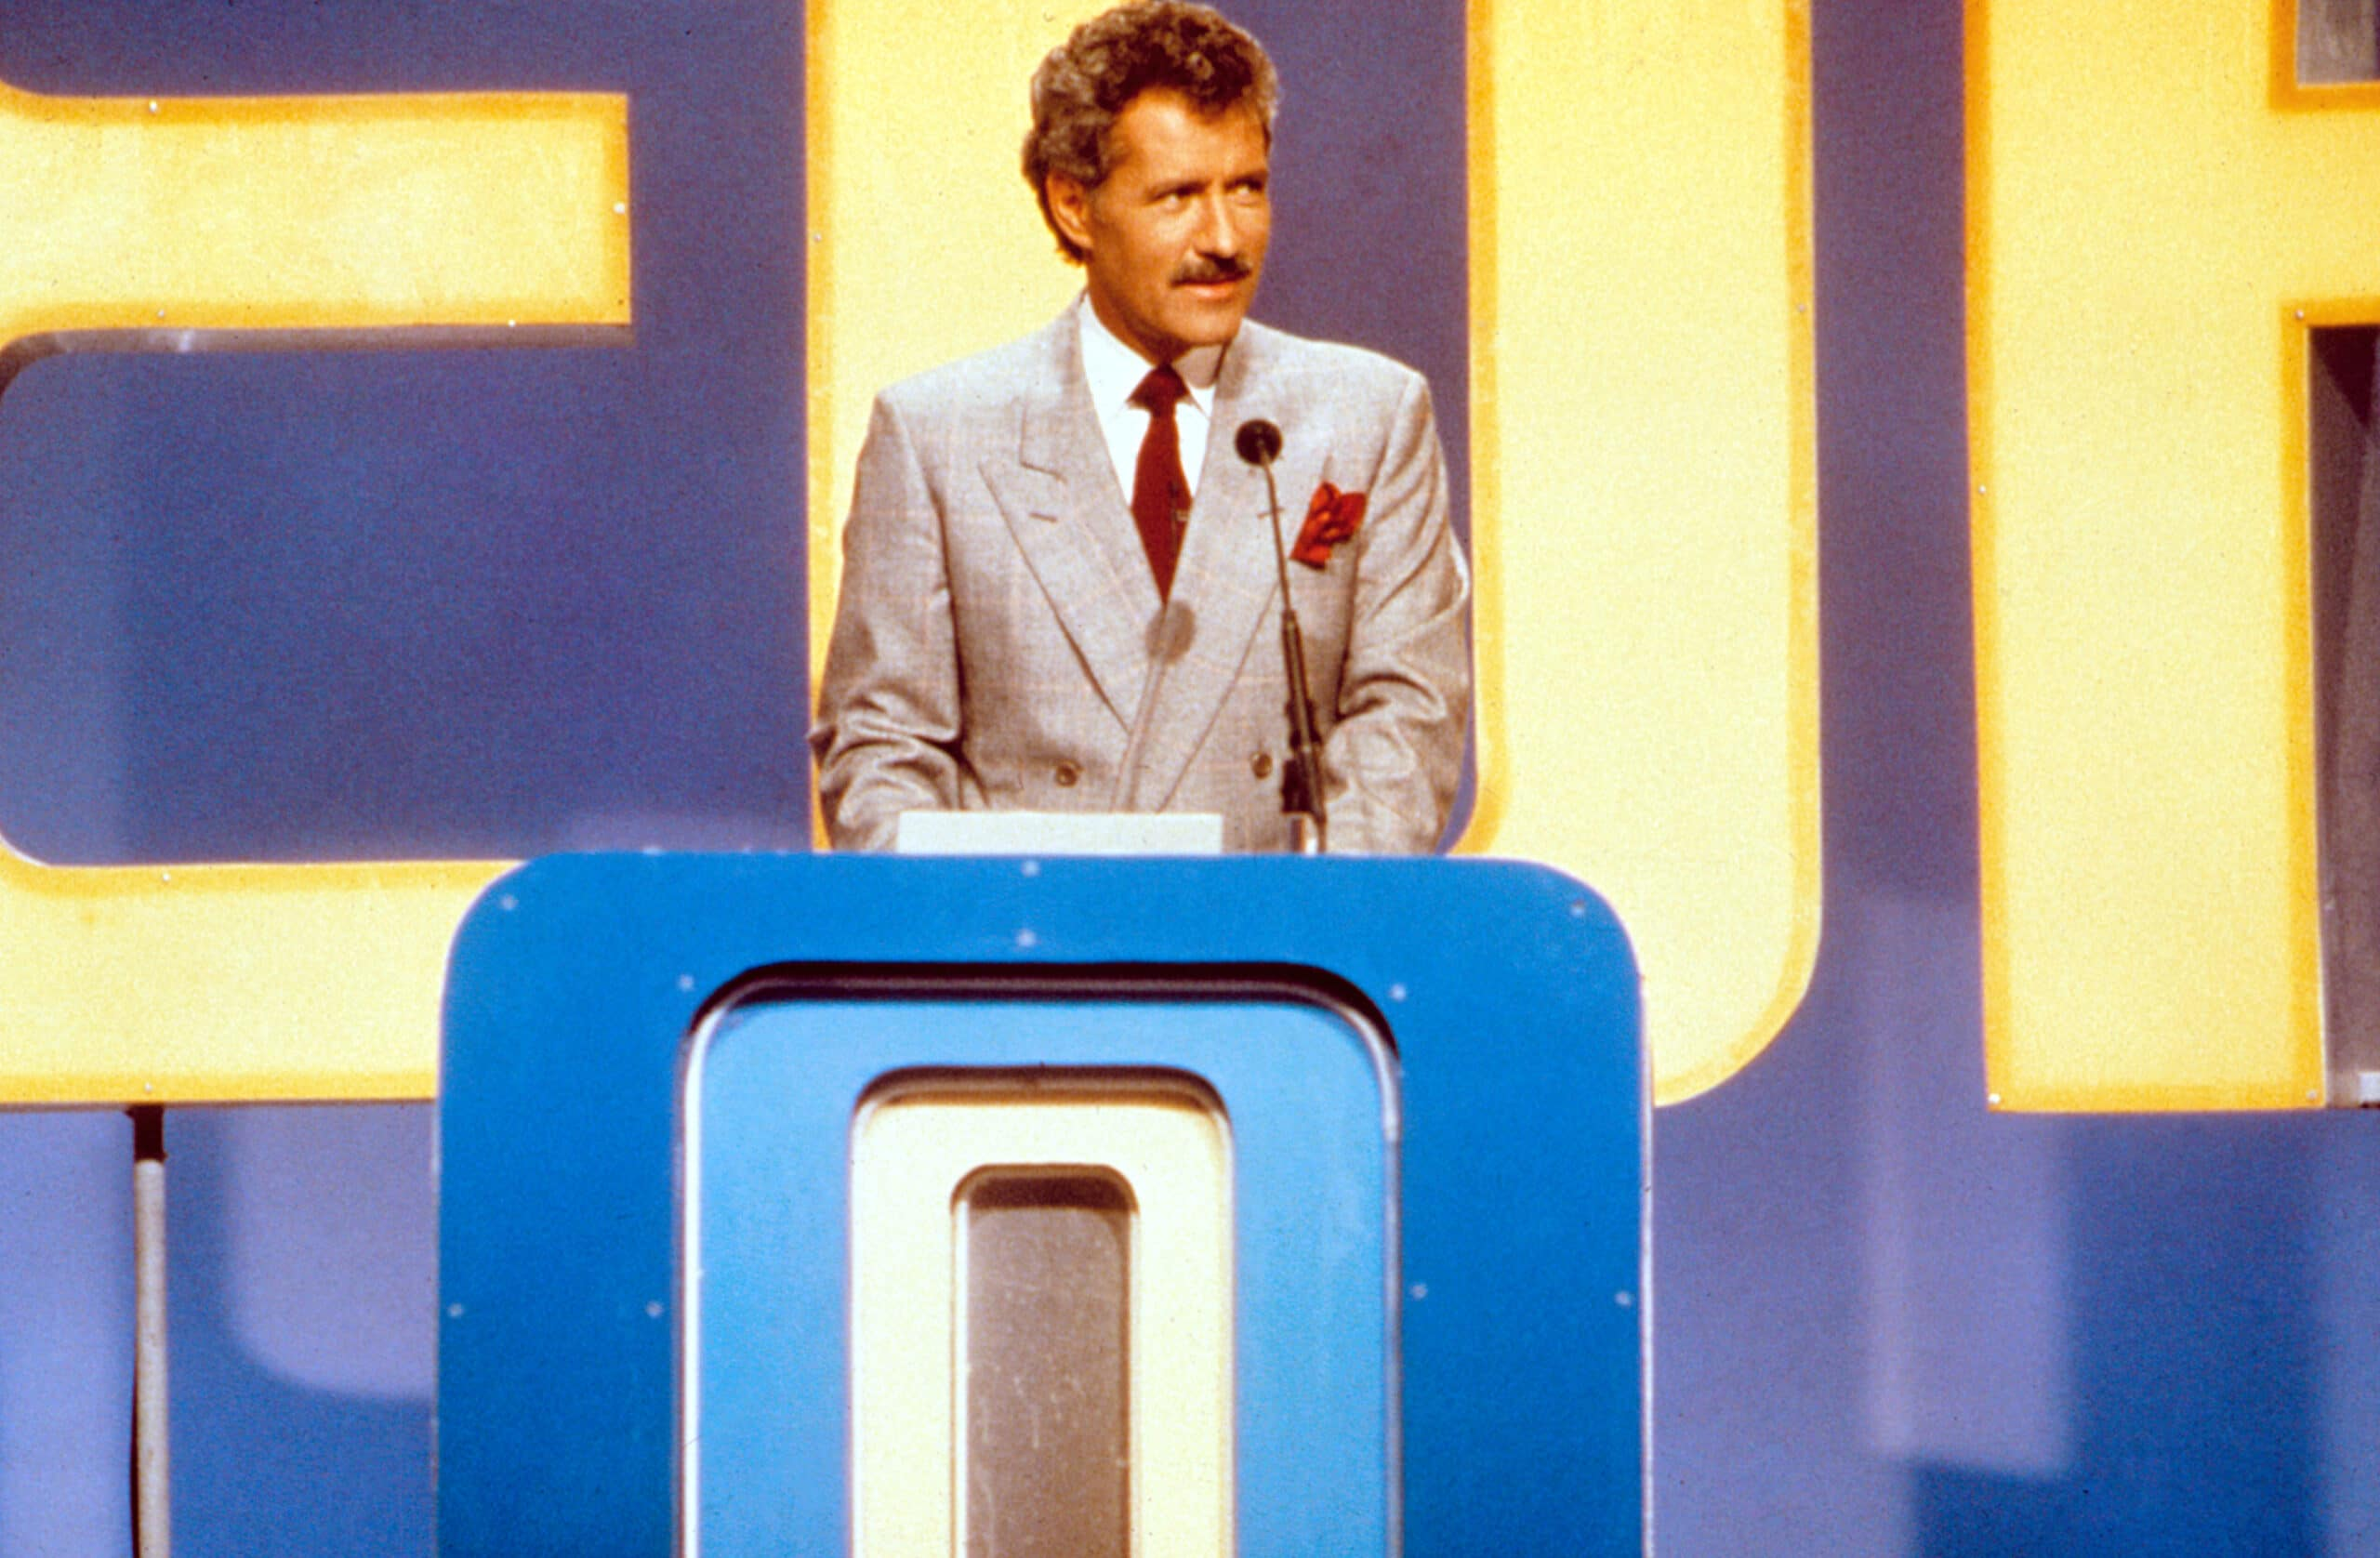 'Wheel Of Fortune' Hosts Pat Sajak And Vanna White Remember Late Friend Alex Trebek